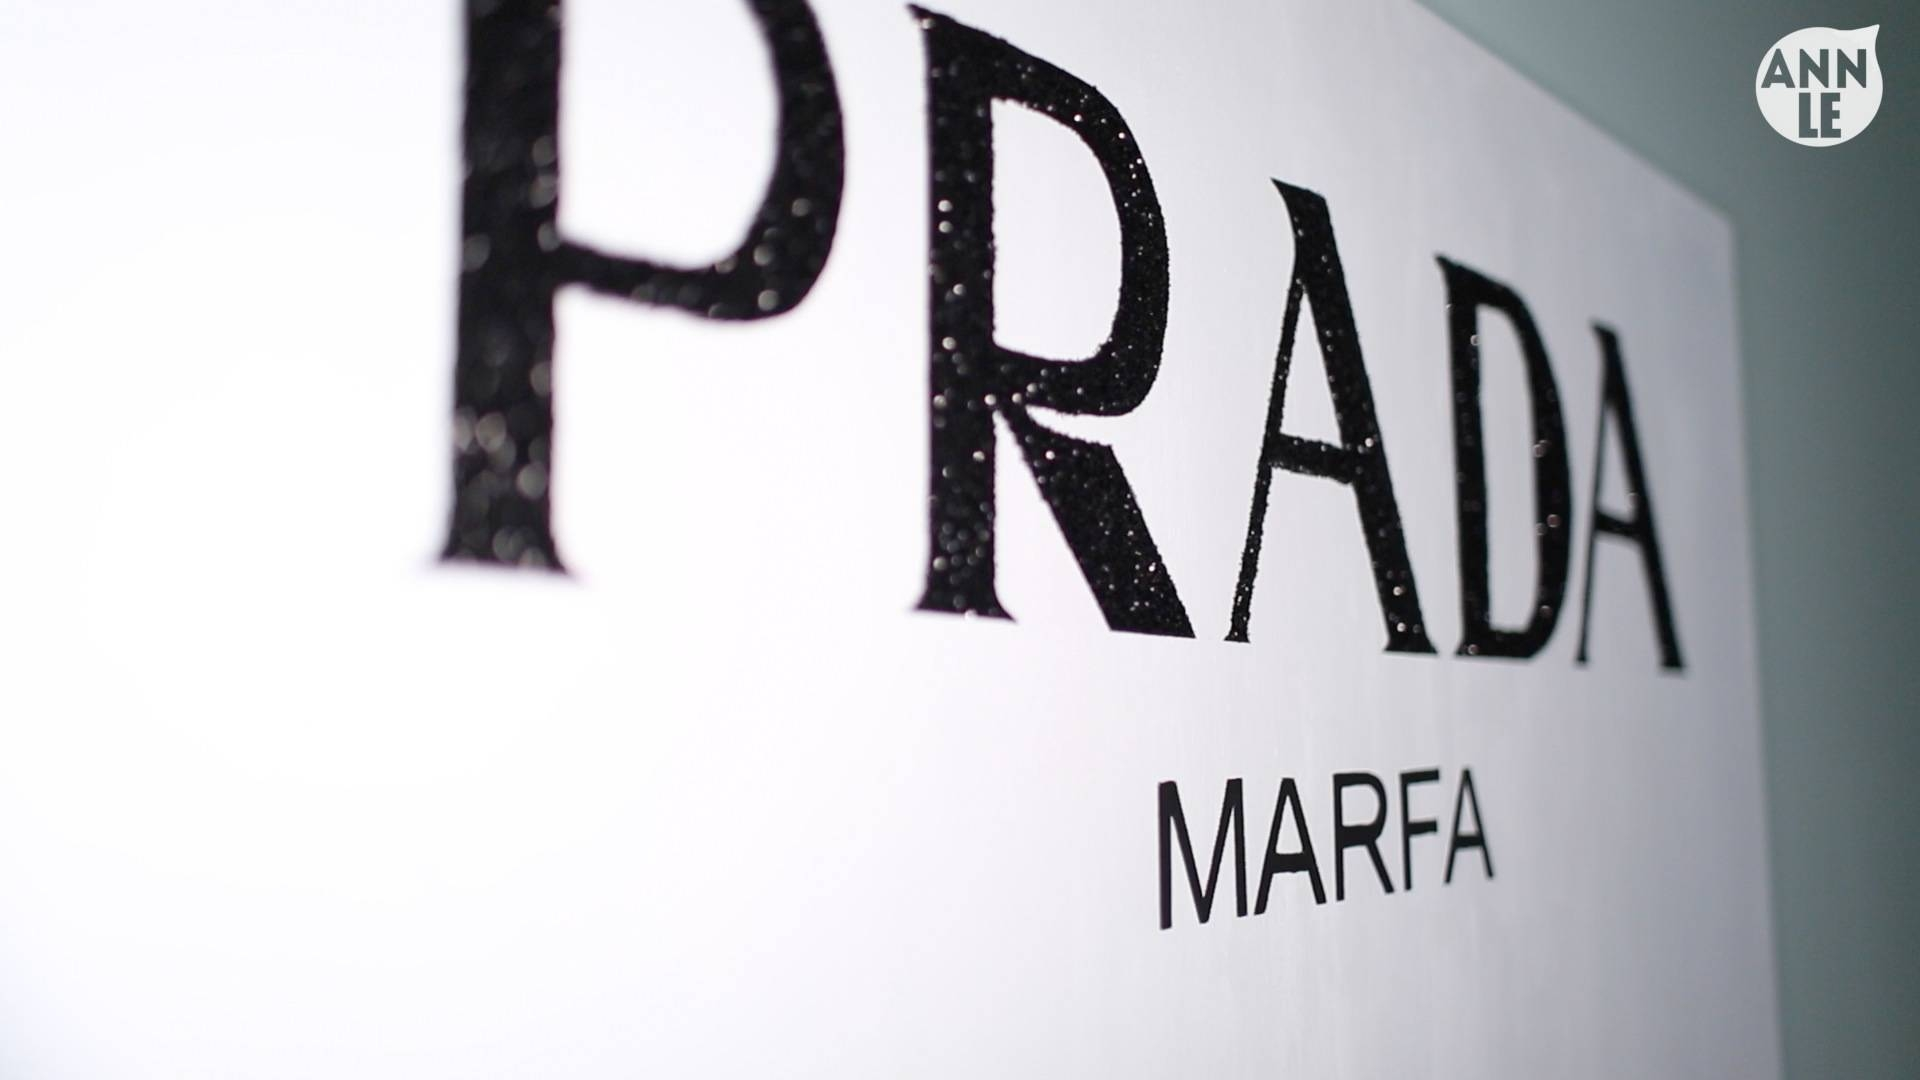 Gossip Girl Prada Wall Art – Ann Le Style Intended For Most Up To Date Prada Marfa Wall Art (View 9 of 25)